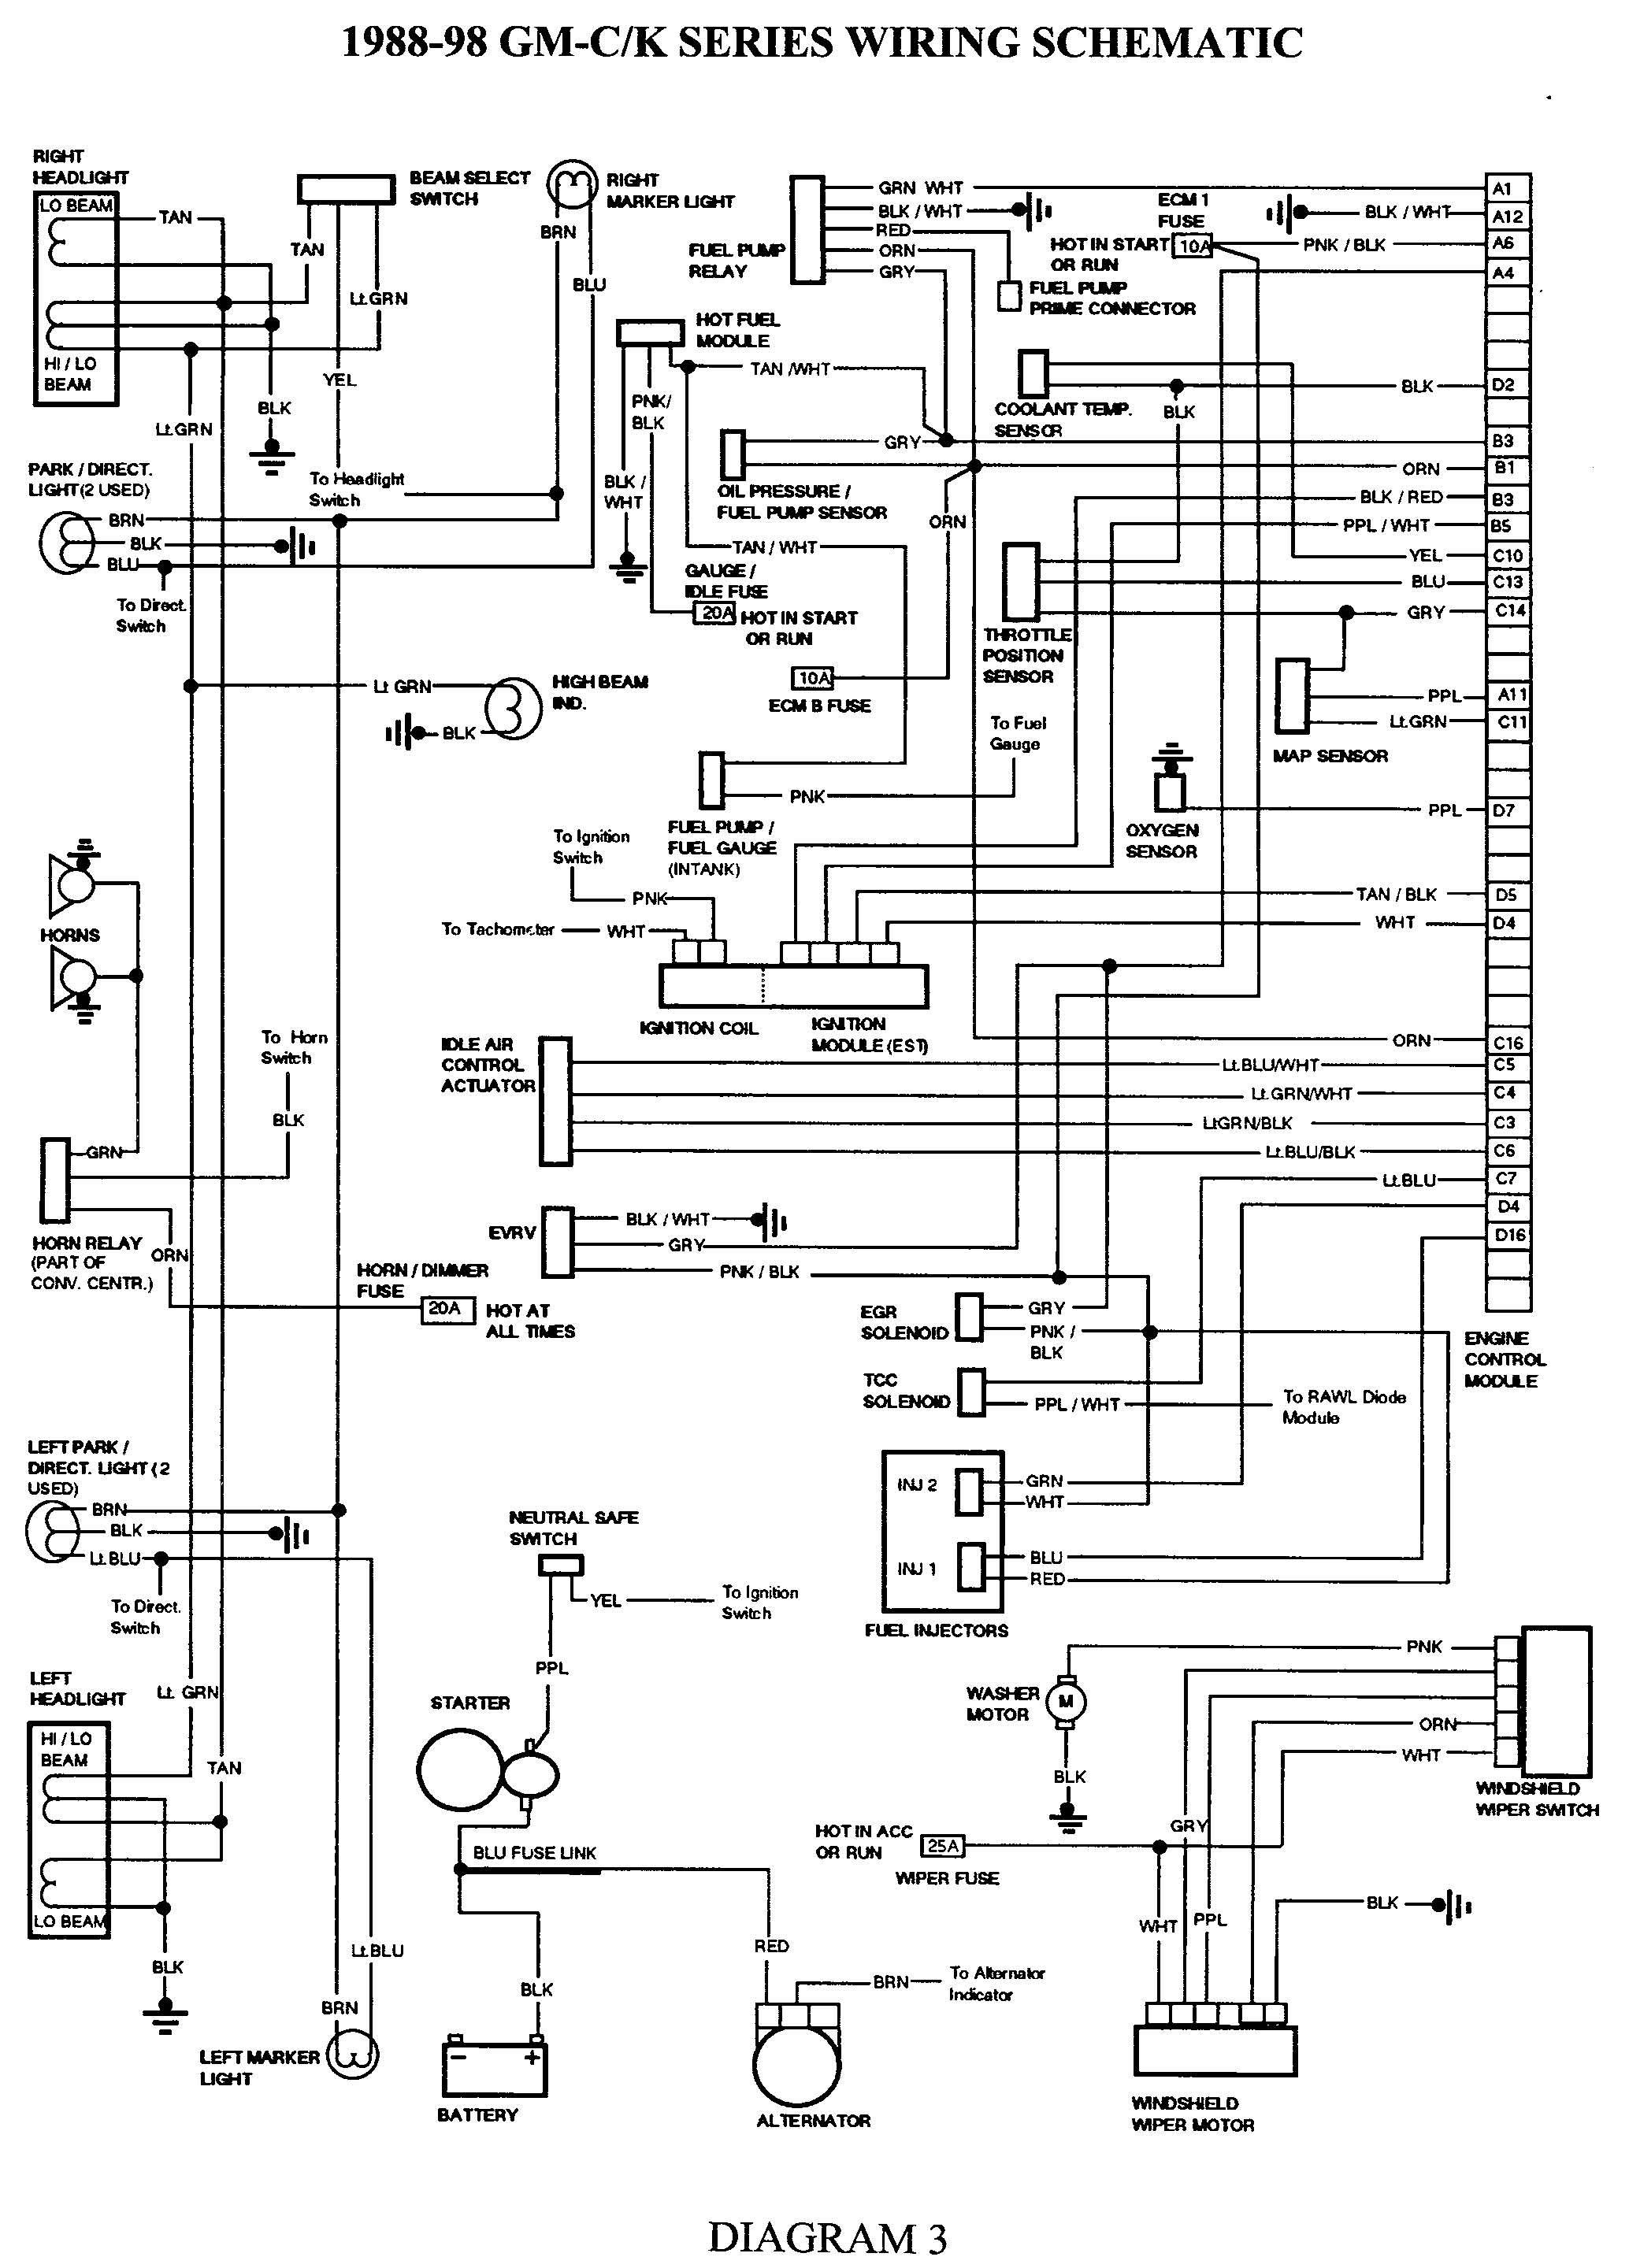 2007 Buick Lucerne Engine Diagram Light Wiring Diagram 2007 Chevy Hhr Smart Wiring Diagrams • Of 2007 Buick Lucerne Engine Diagram